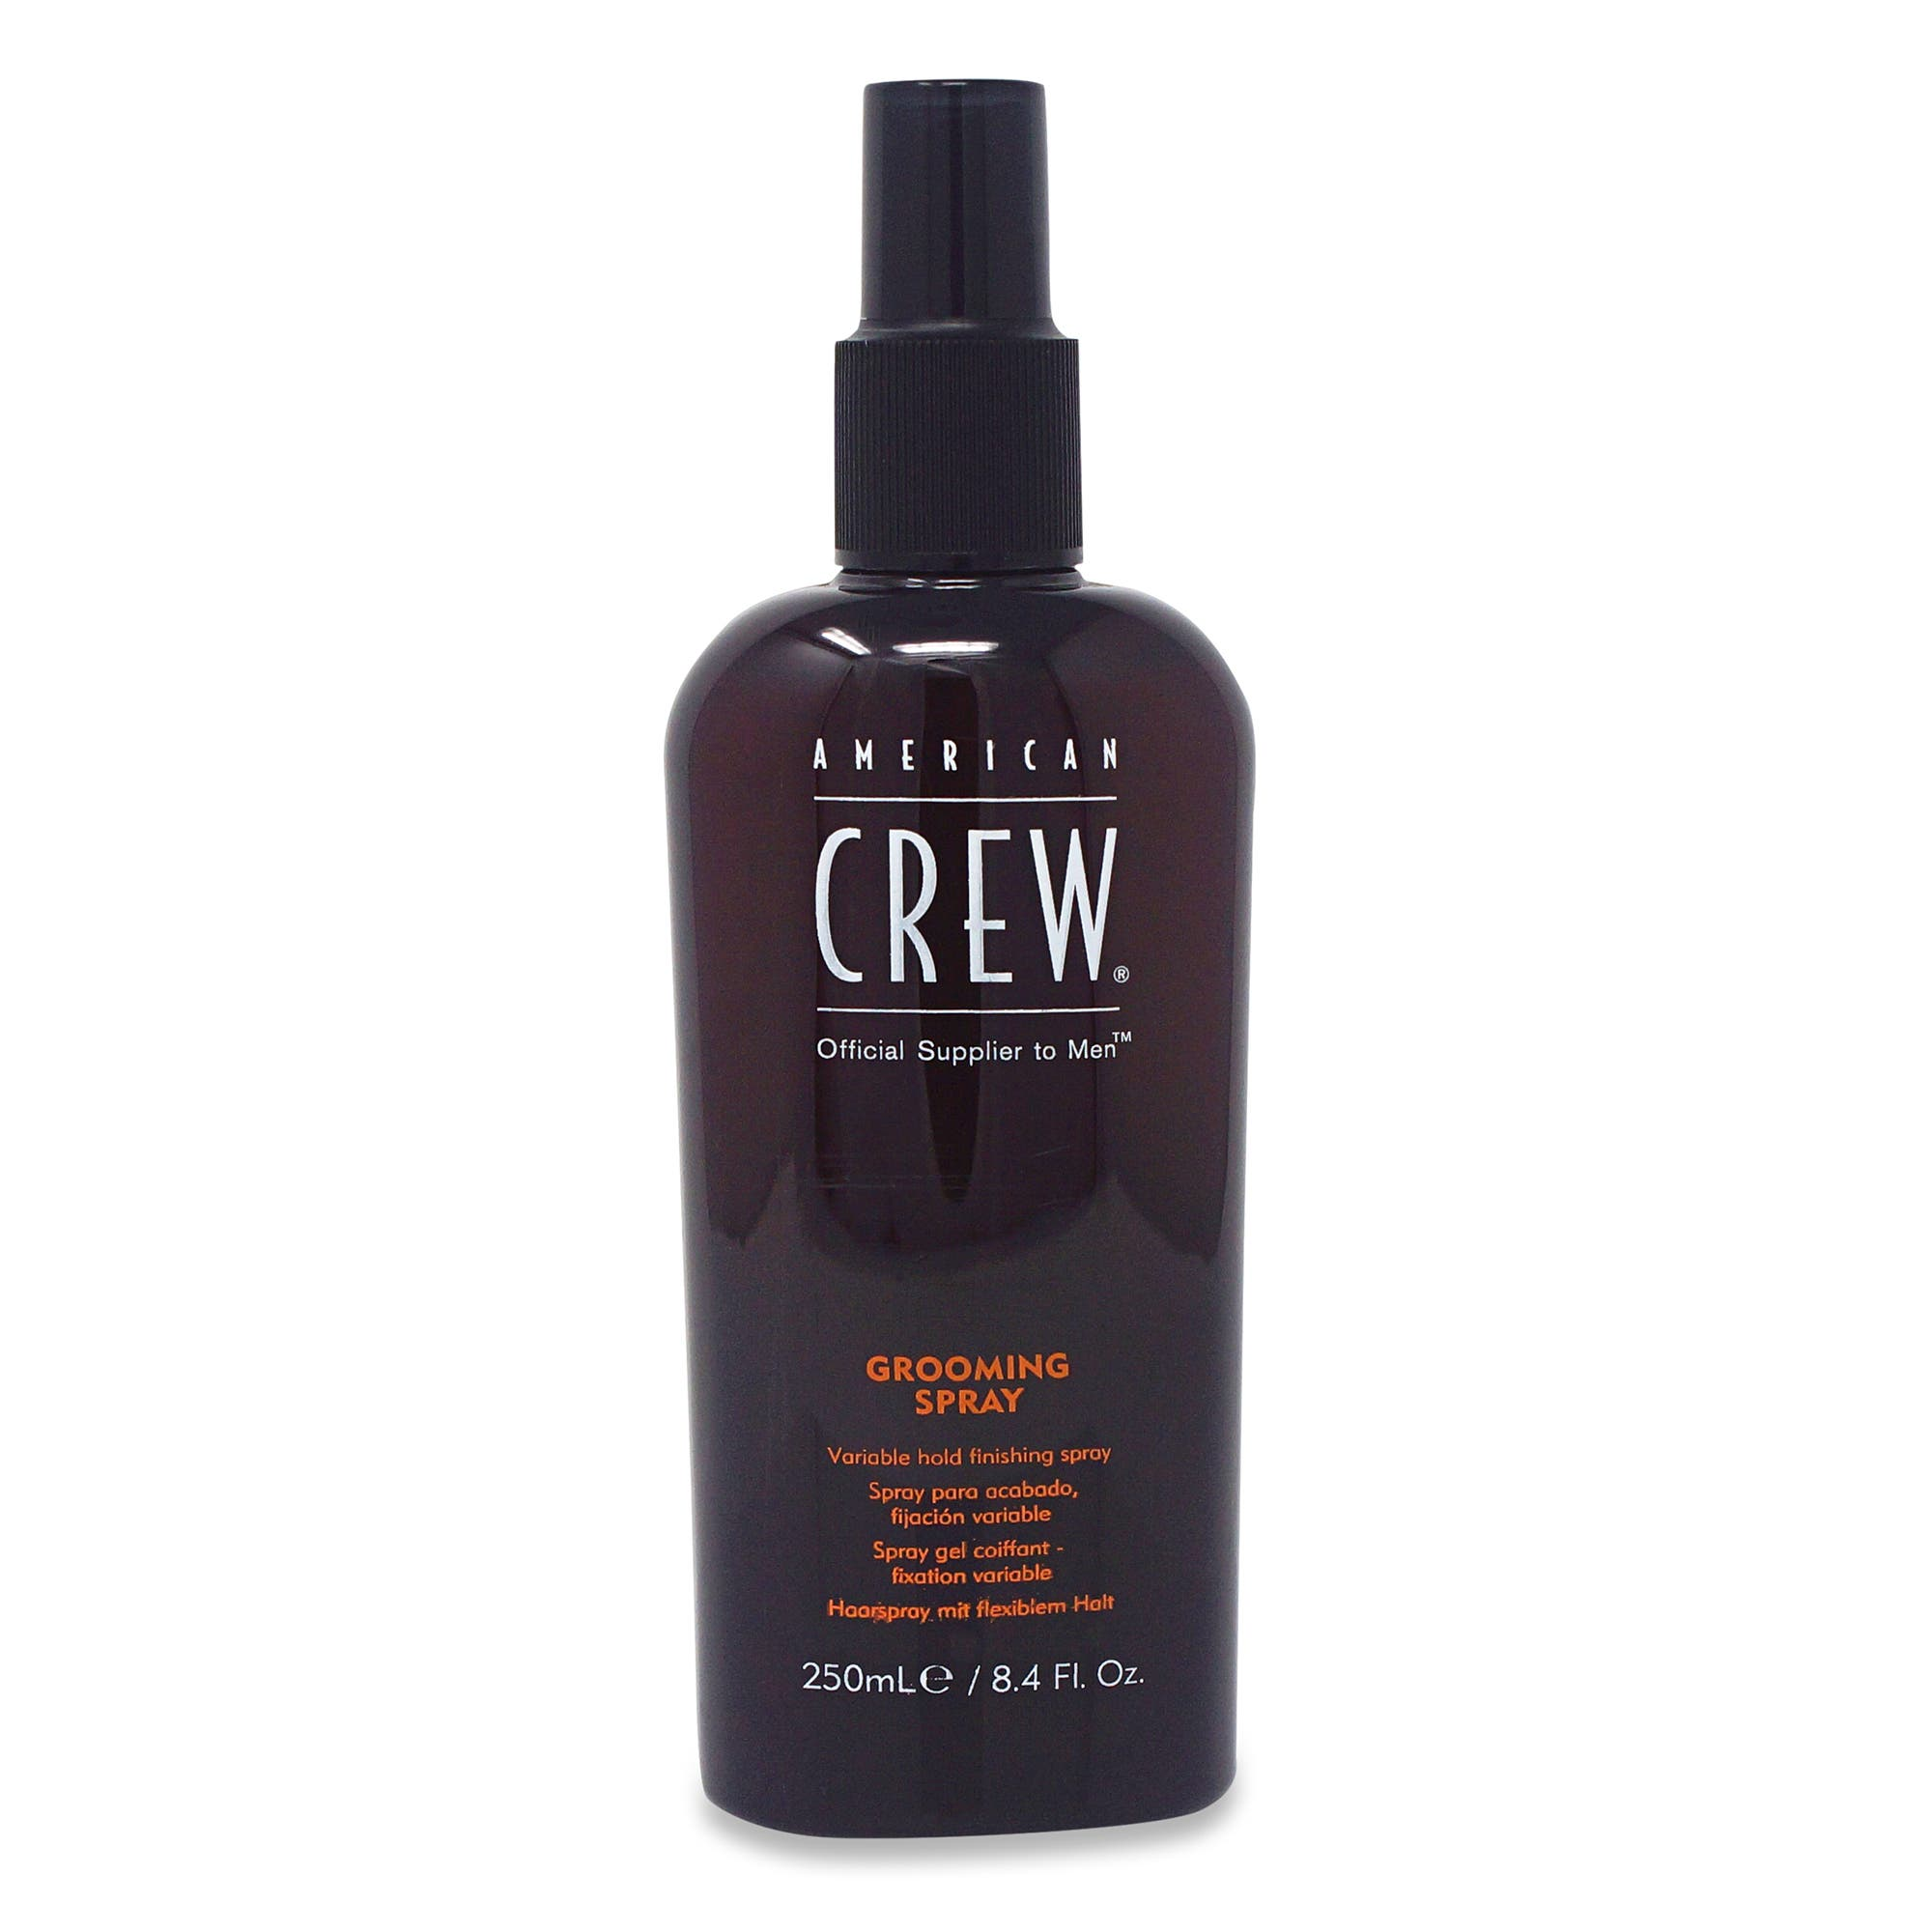 AMERICAN CREW GROOMING SPRAY 8.45oz/250ml